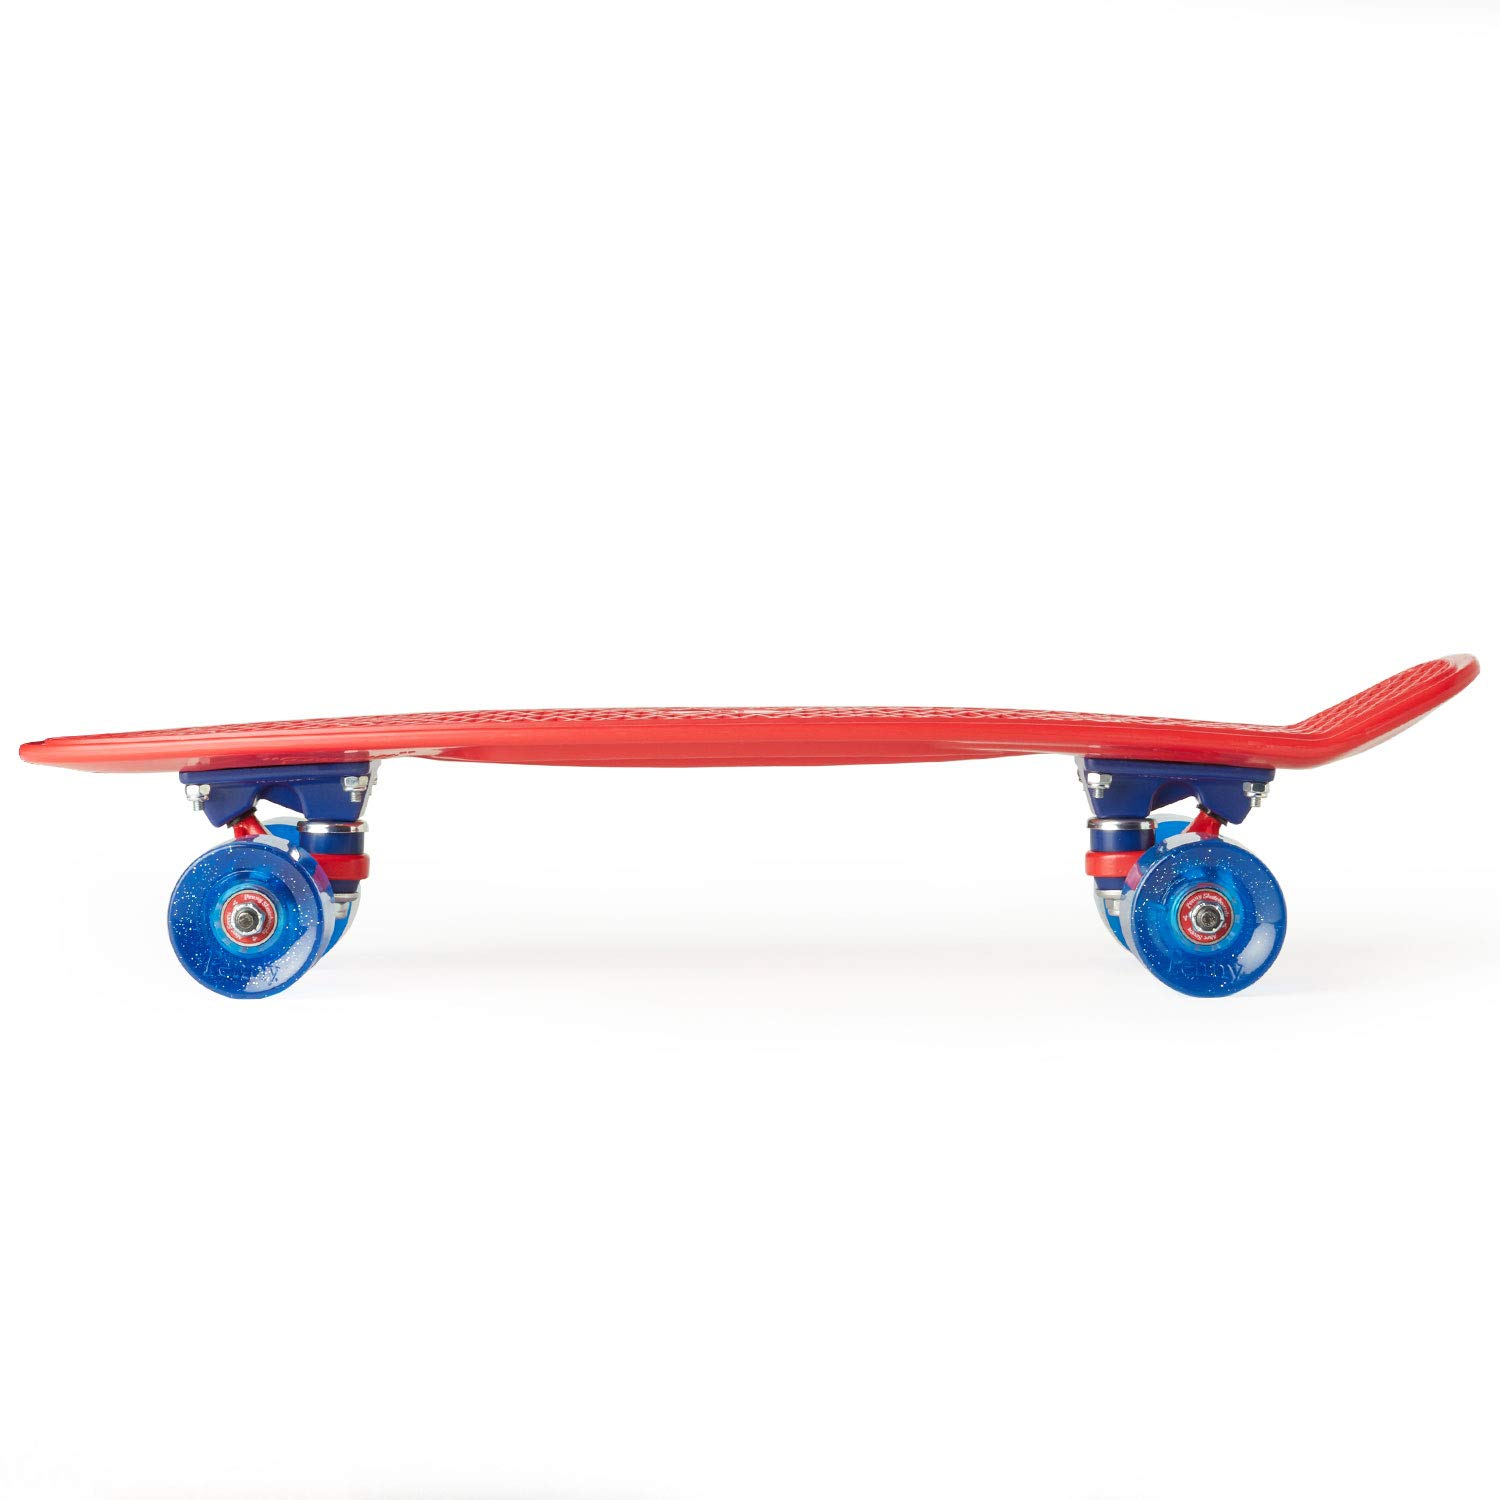 Penny Australia Complete Skateboard (Red Comet, 22'') by Penny Australia (Image #5)